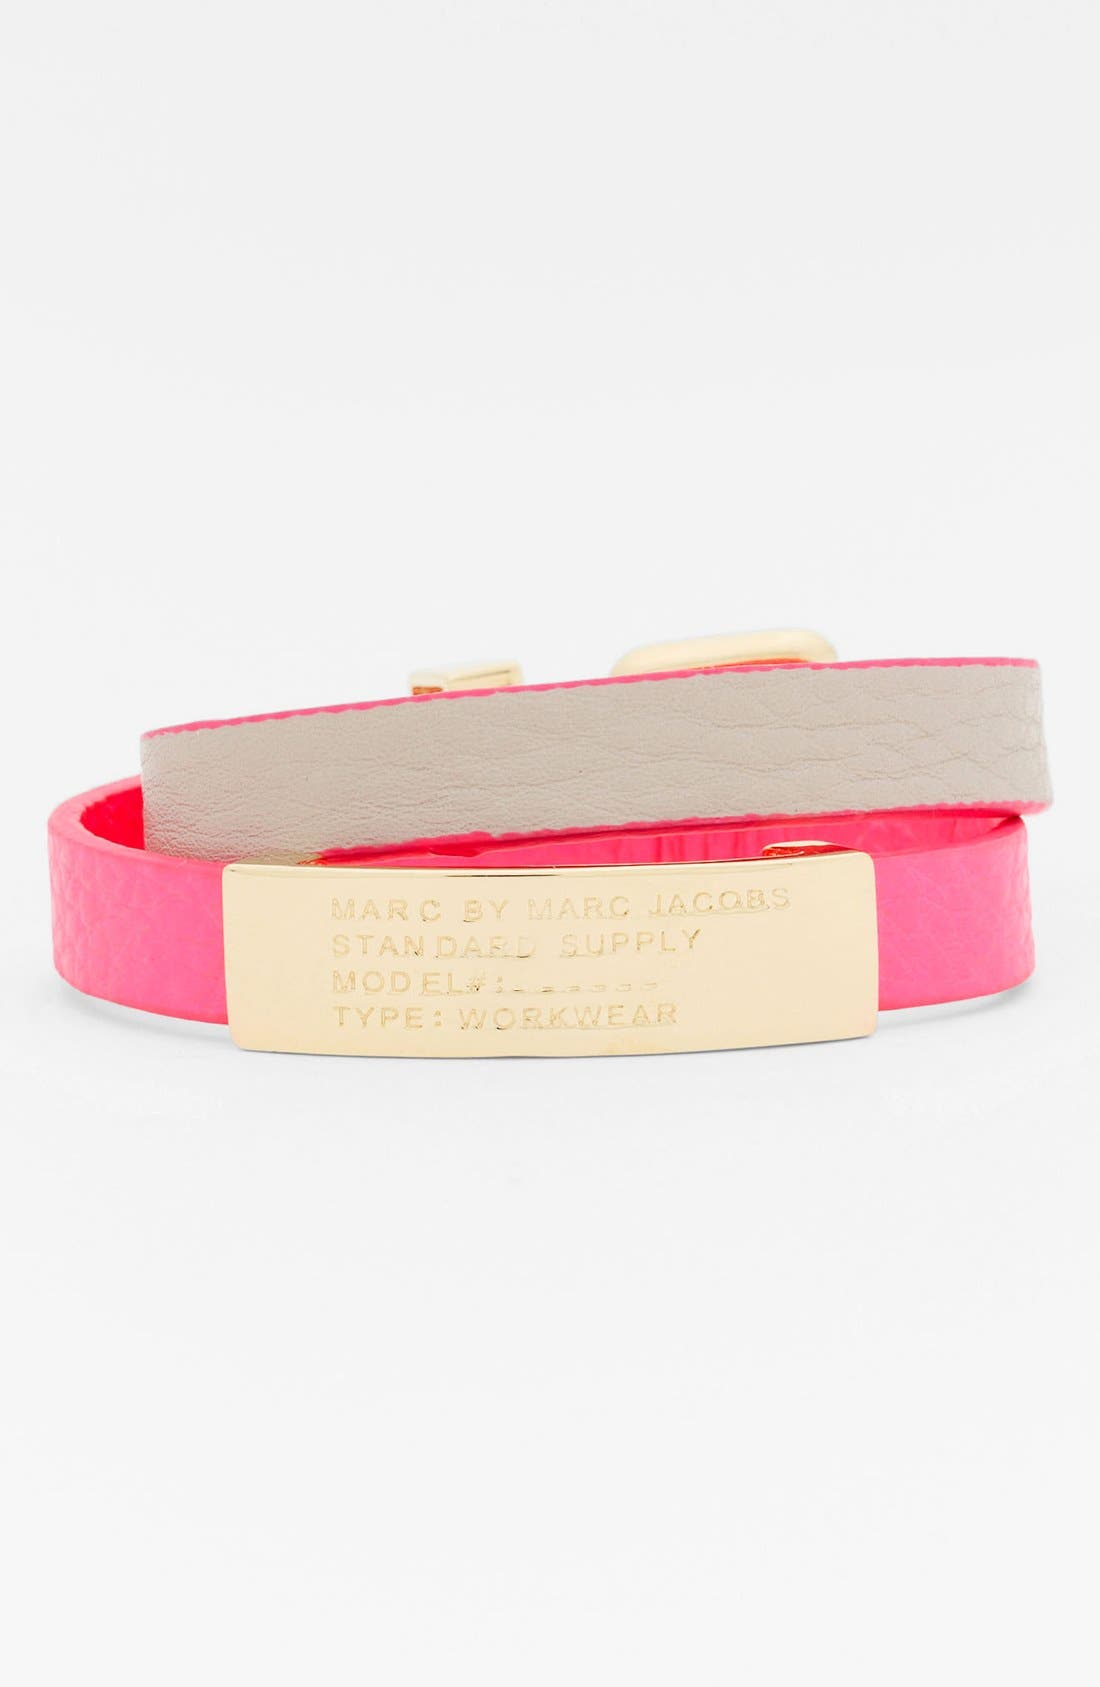 Main Image - MARC BY MARC JACOBS 'Standard Supply' Wrap ID Bracelet